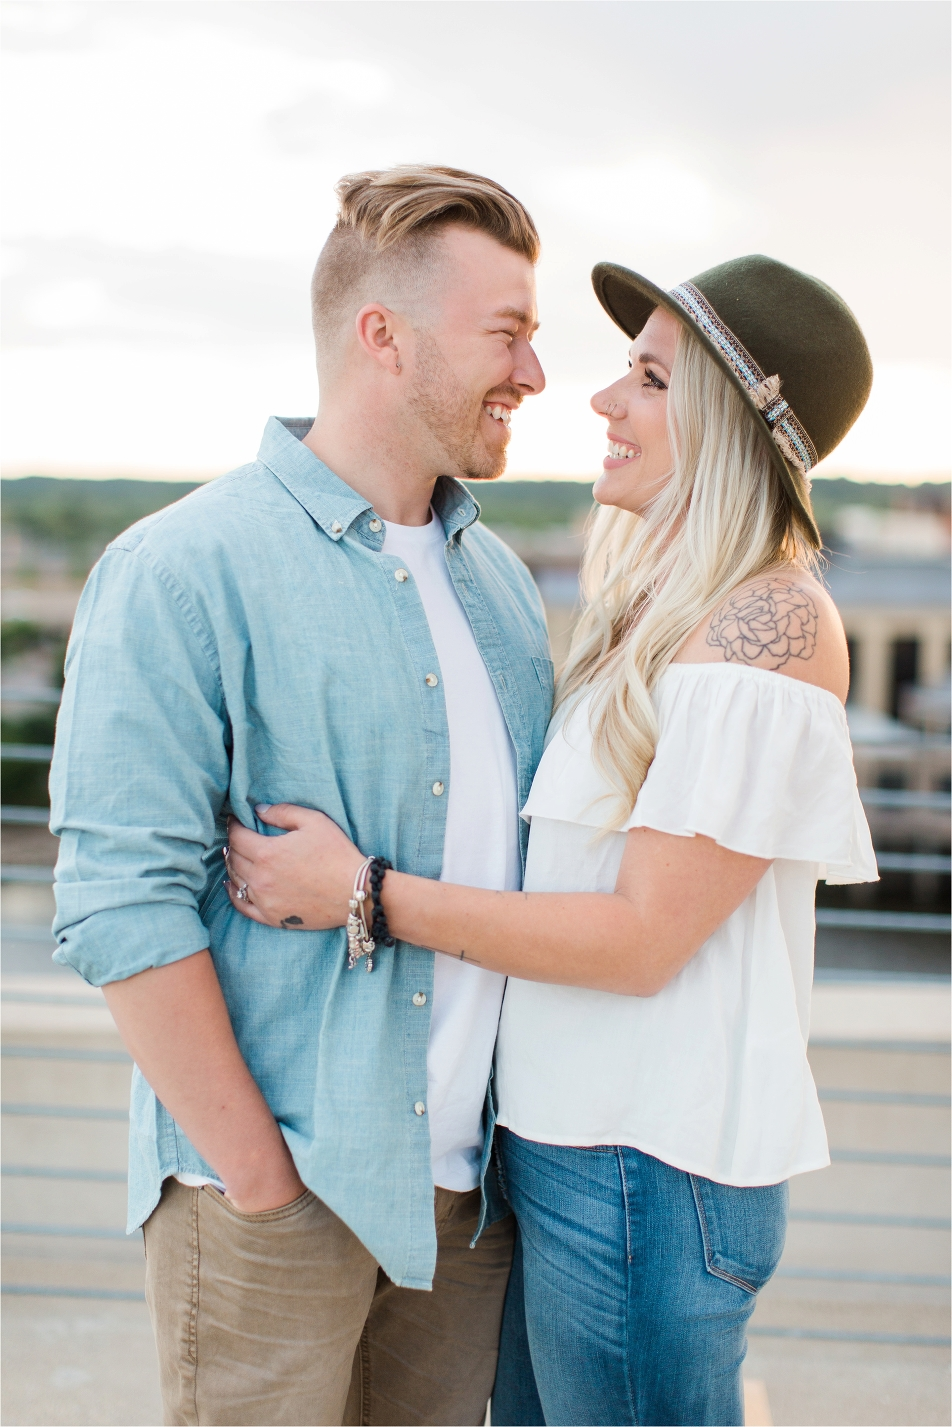 Grand_rapids_rooftop_engagement_session_Lifestyle_photography_Tifani_Lyn_0002